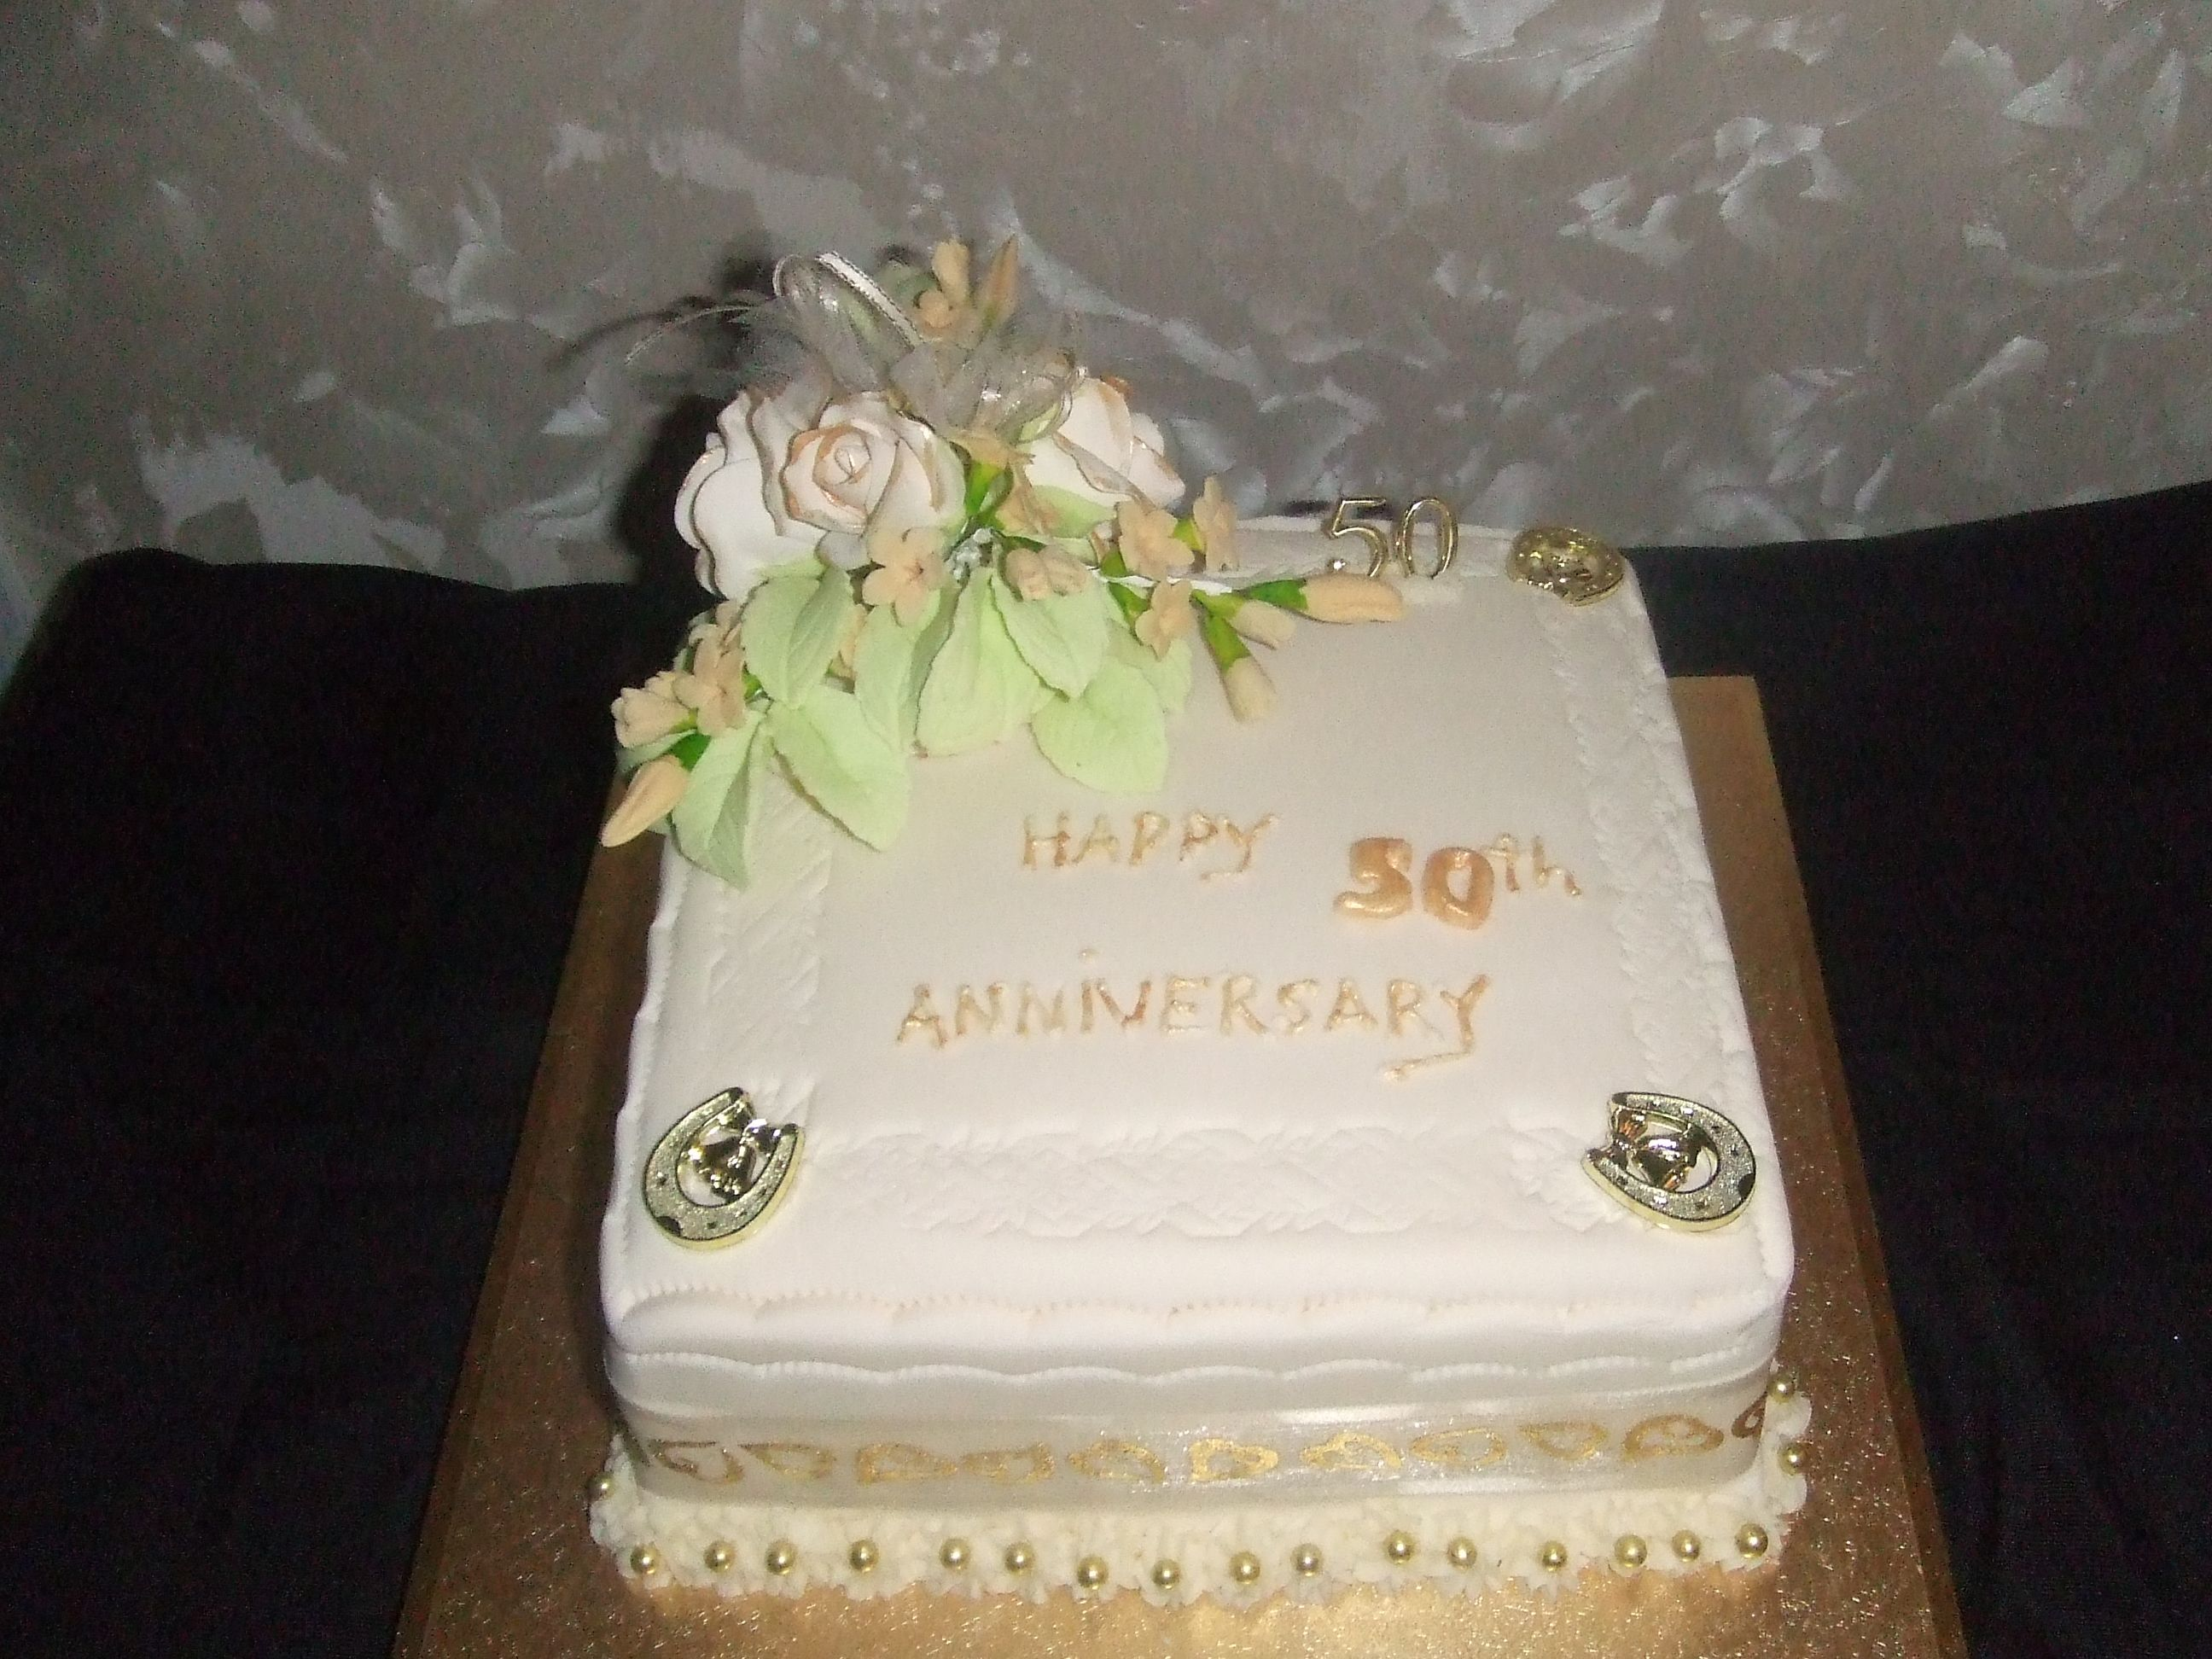 A recent 50th golden wedding cake for a local client who only